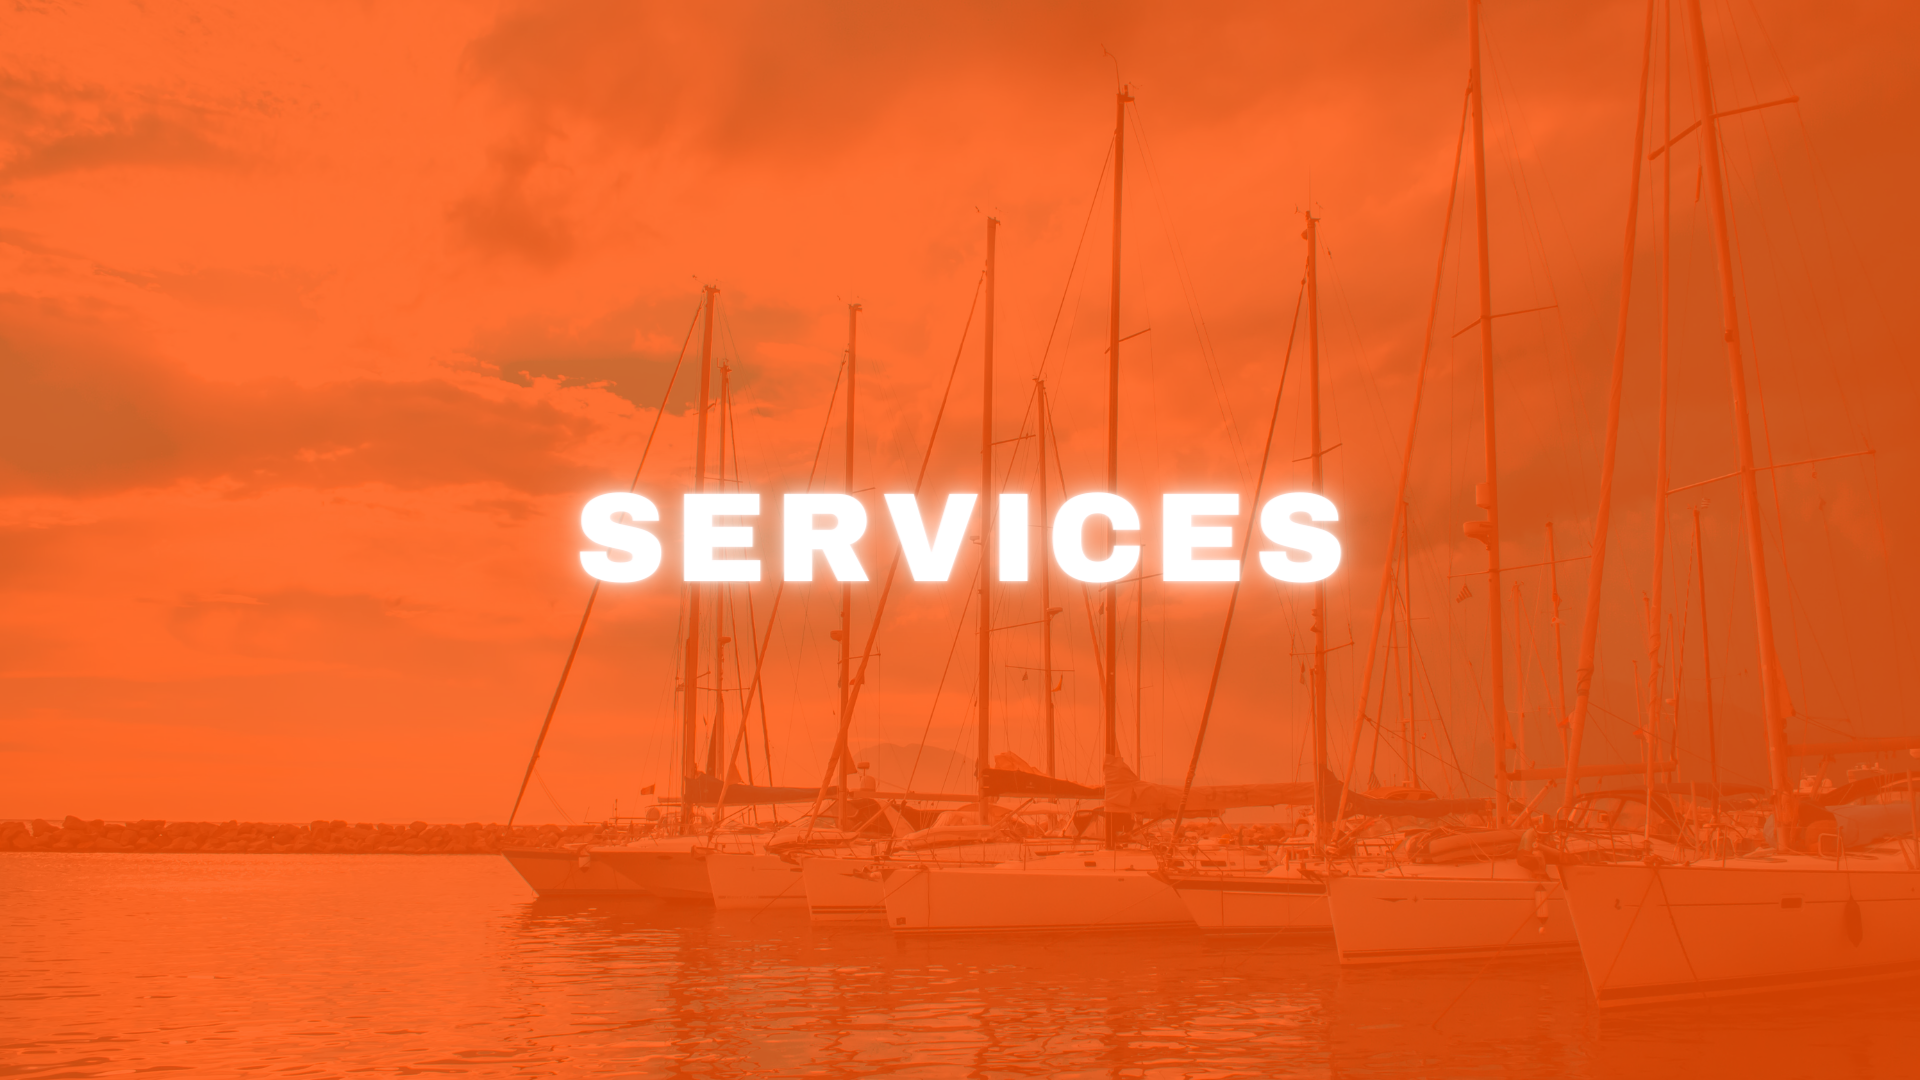 MG8 Cleveland- Services